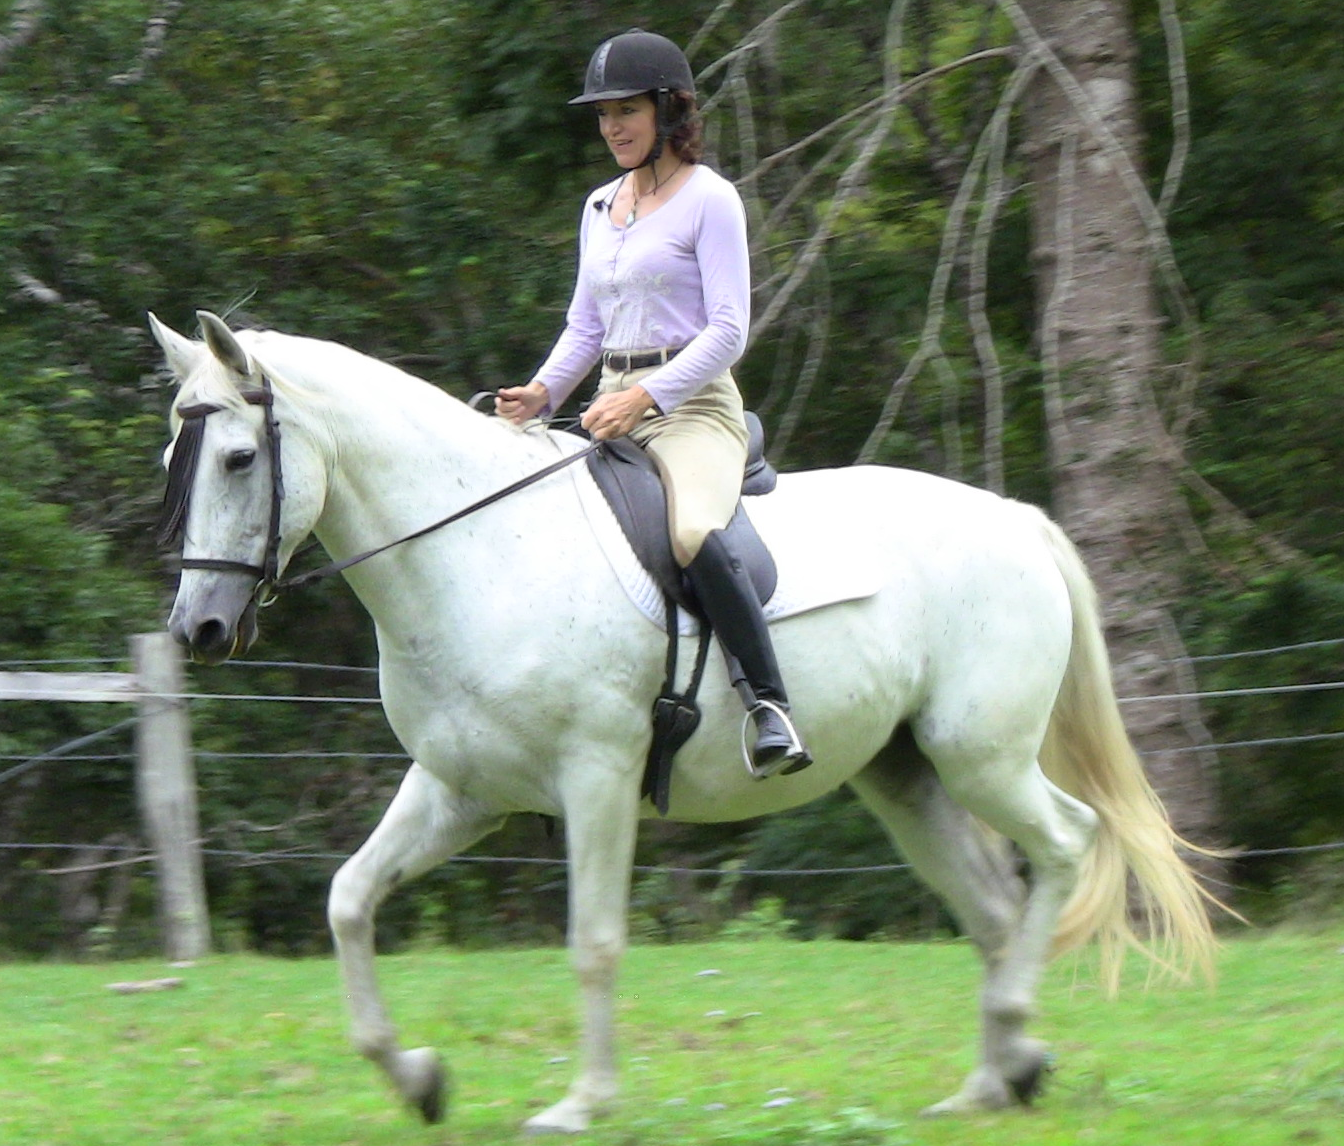 Getting The Success You Want With Your Horse